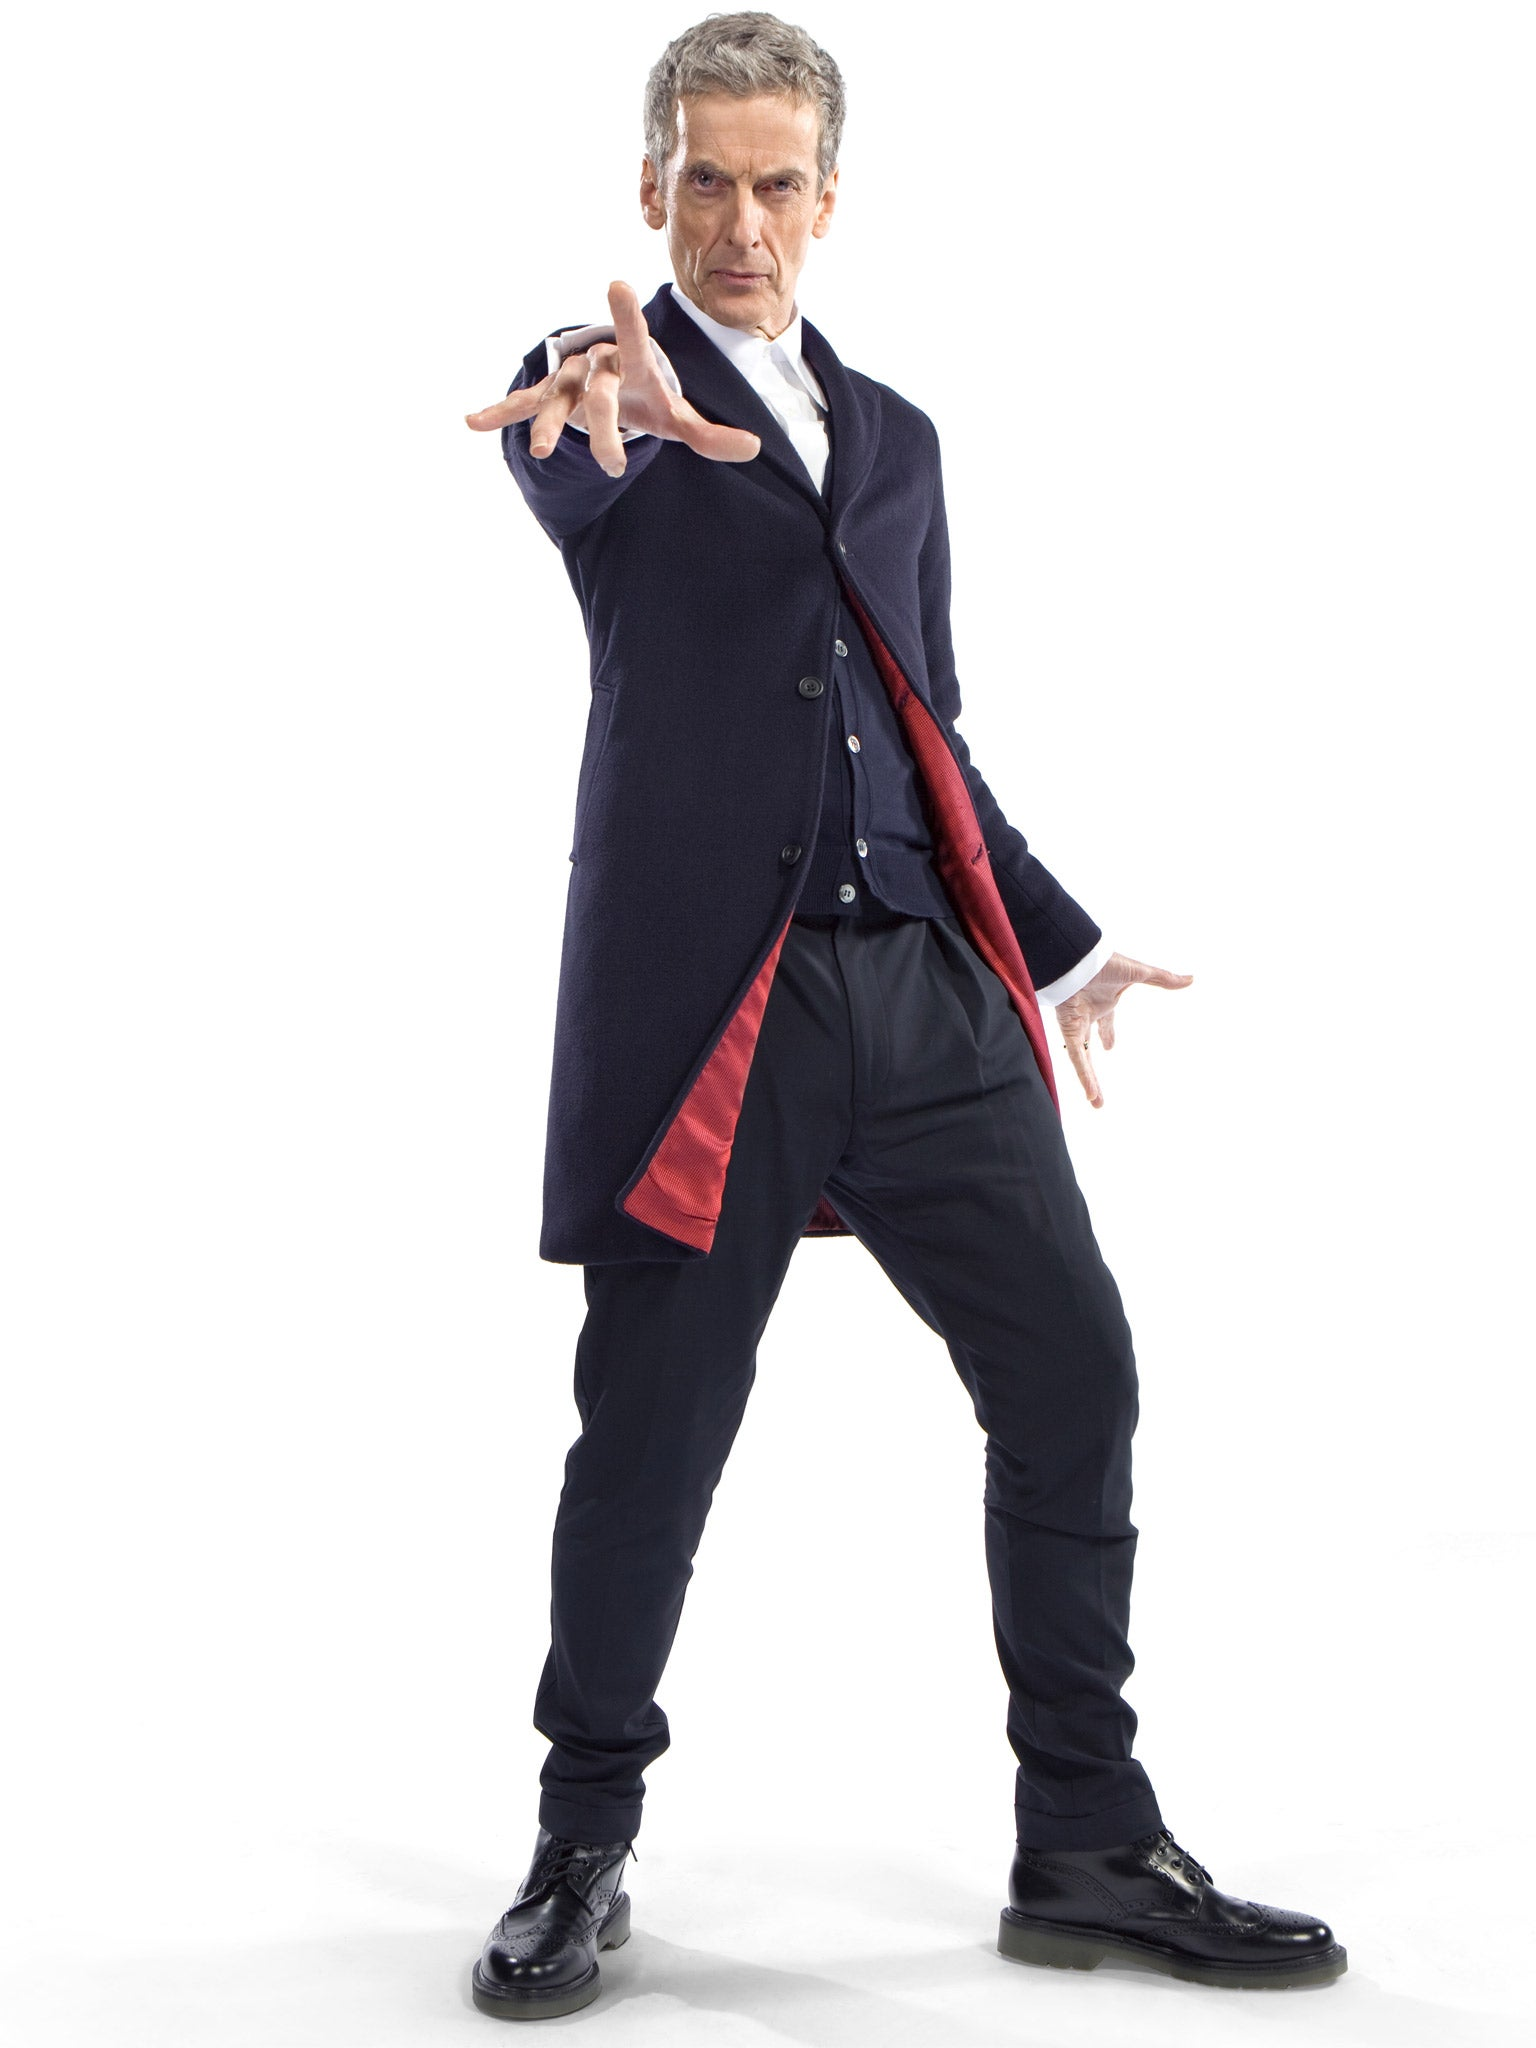 Doctor Who and Crombie: Mod man with a box | The Independent